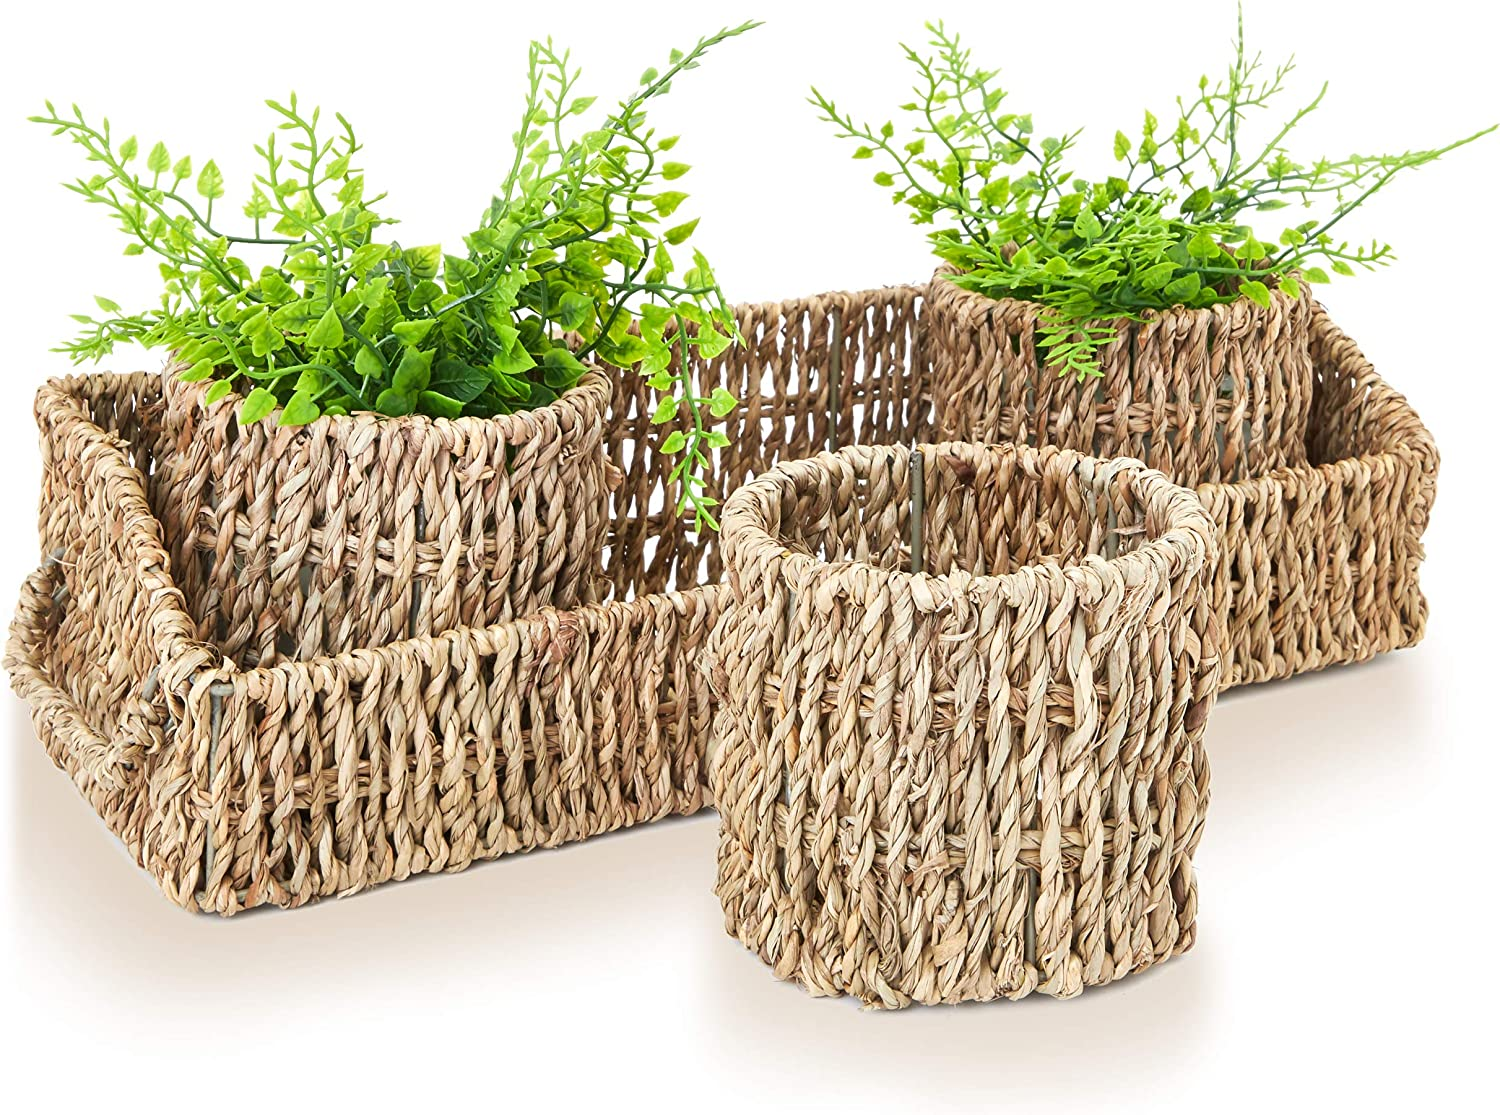 Juvale Round Seagrass Wicker Nesting Storage Basket Set with Rectangle Tray (4 Pieces)